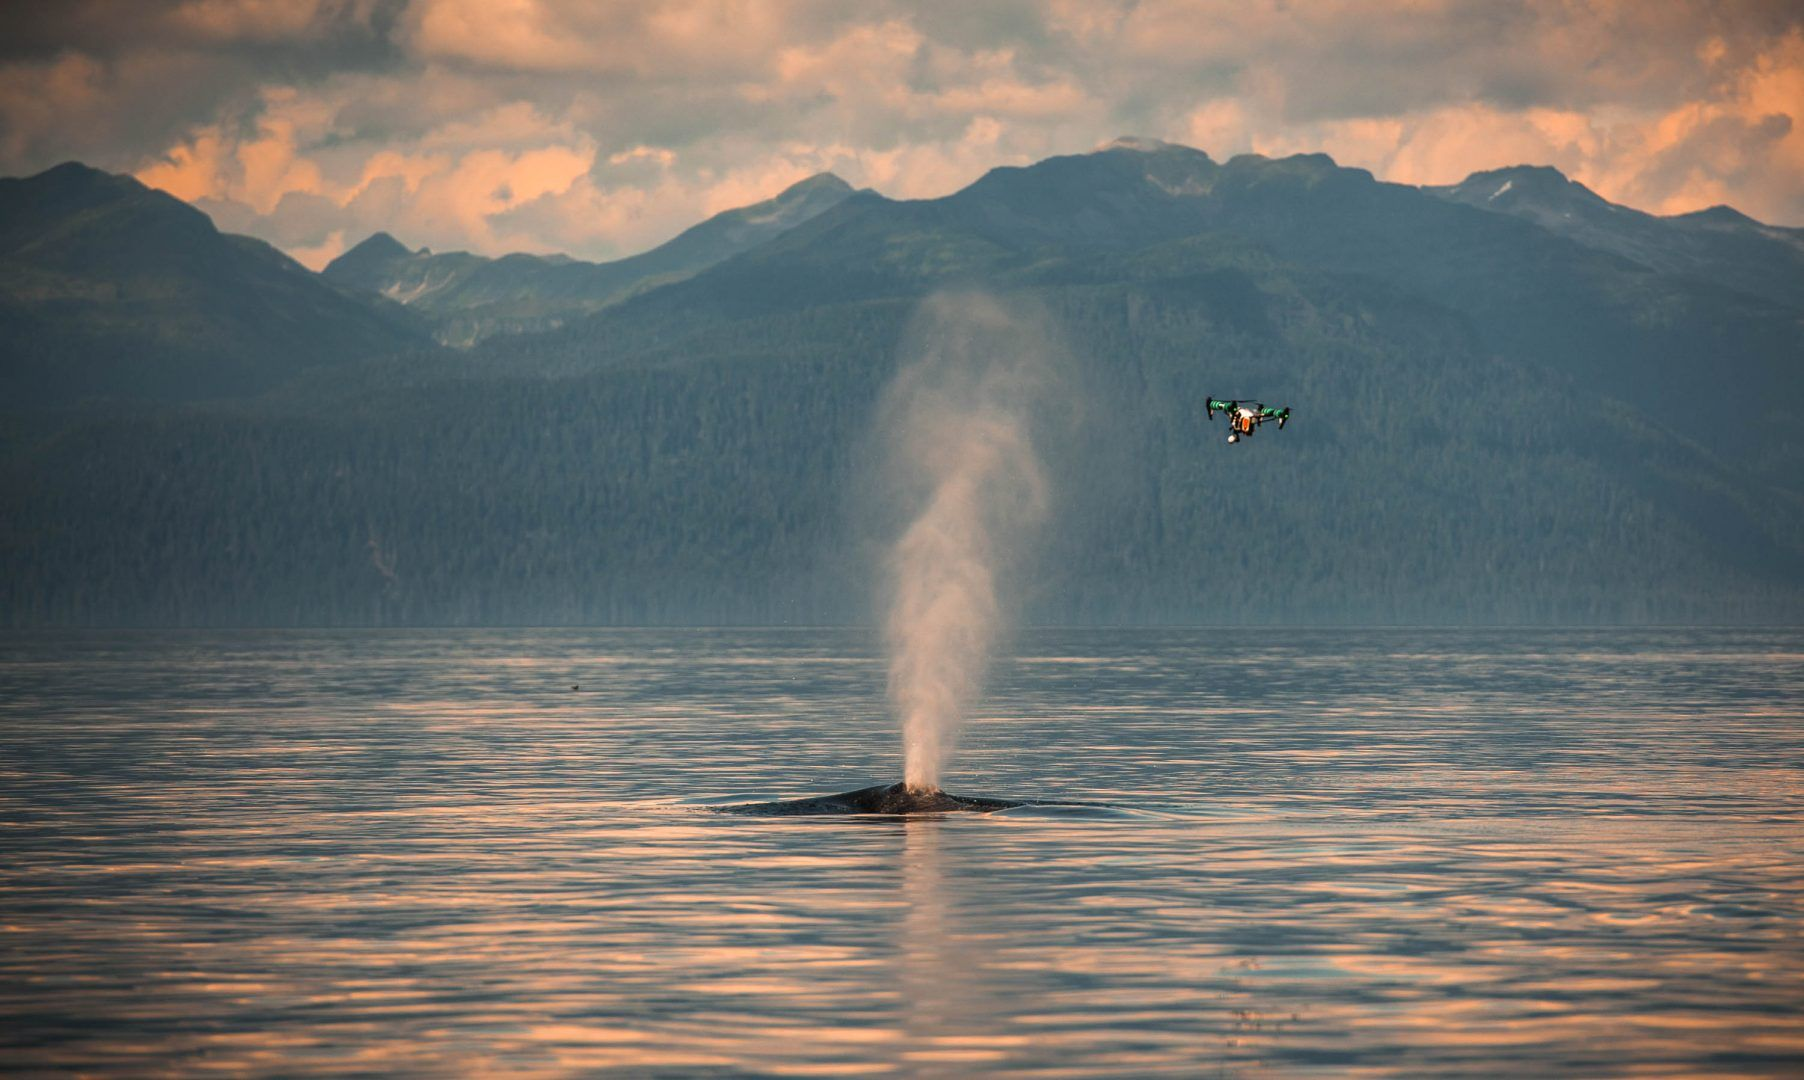 Machine learning algorithms that use drone images to help identify individual whales today; in the future, they will also provide volumetric analysis to measure whale heath.